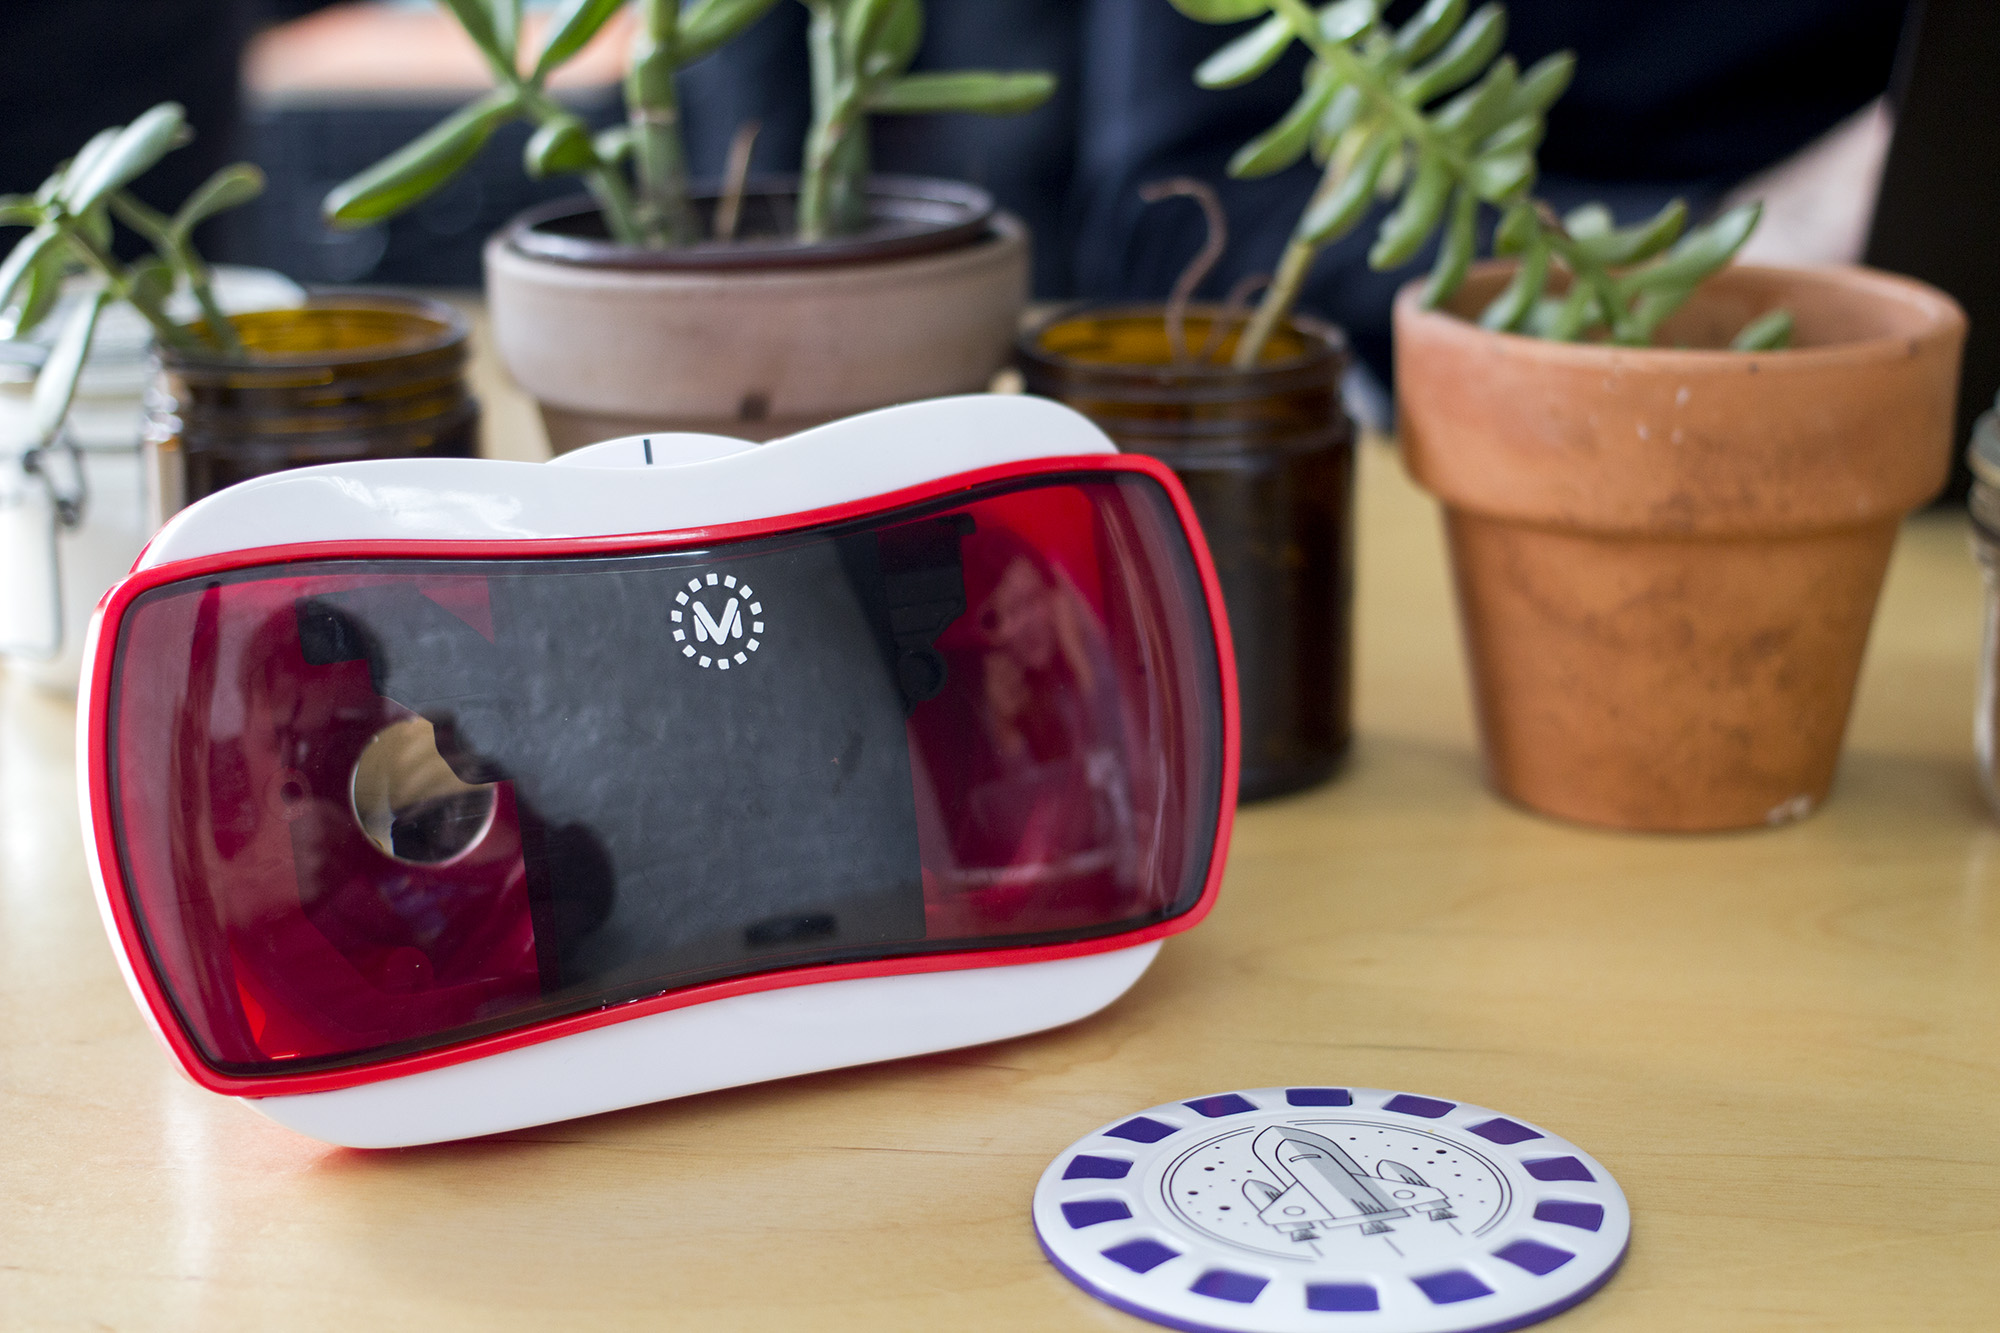 The new View-Master from Mattel.